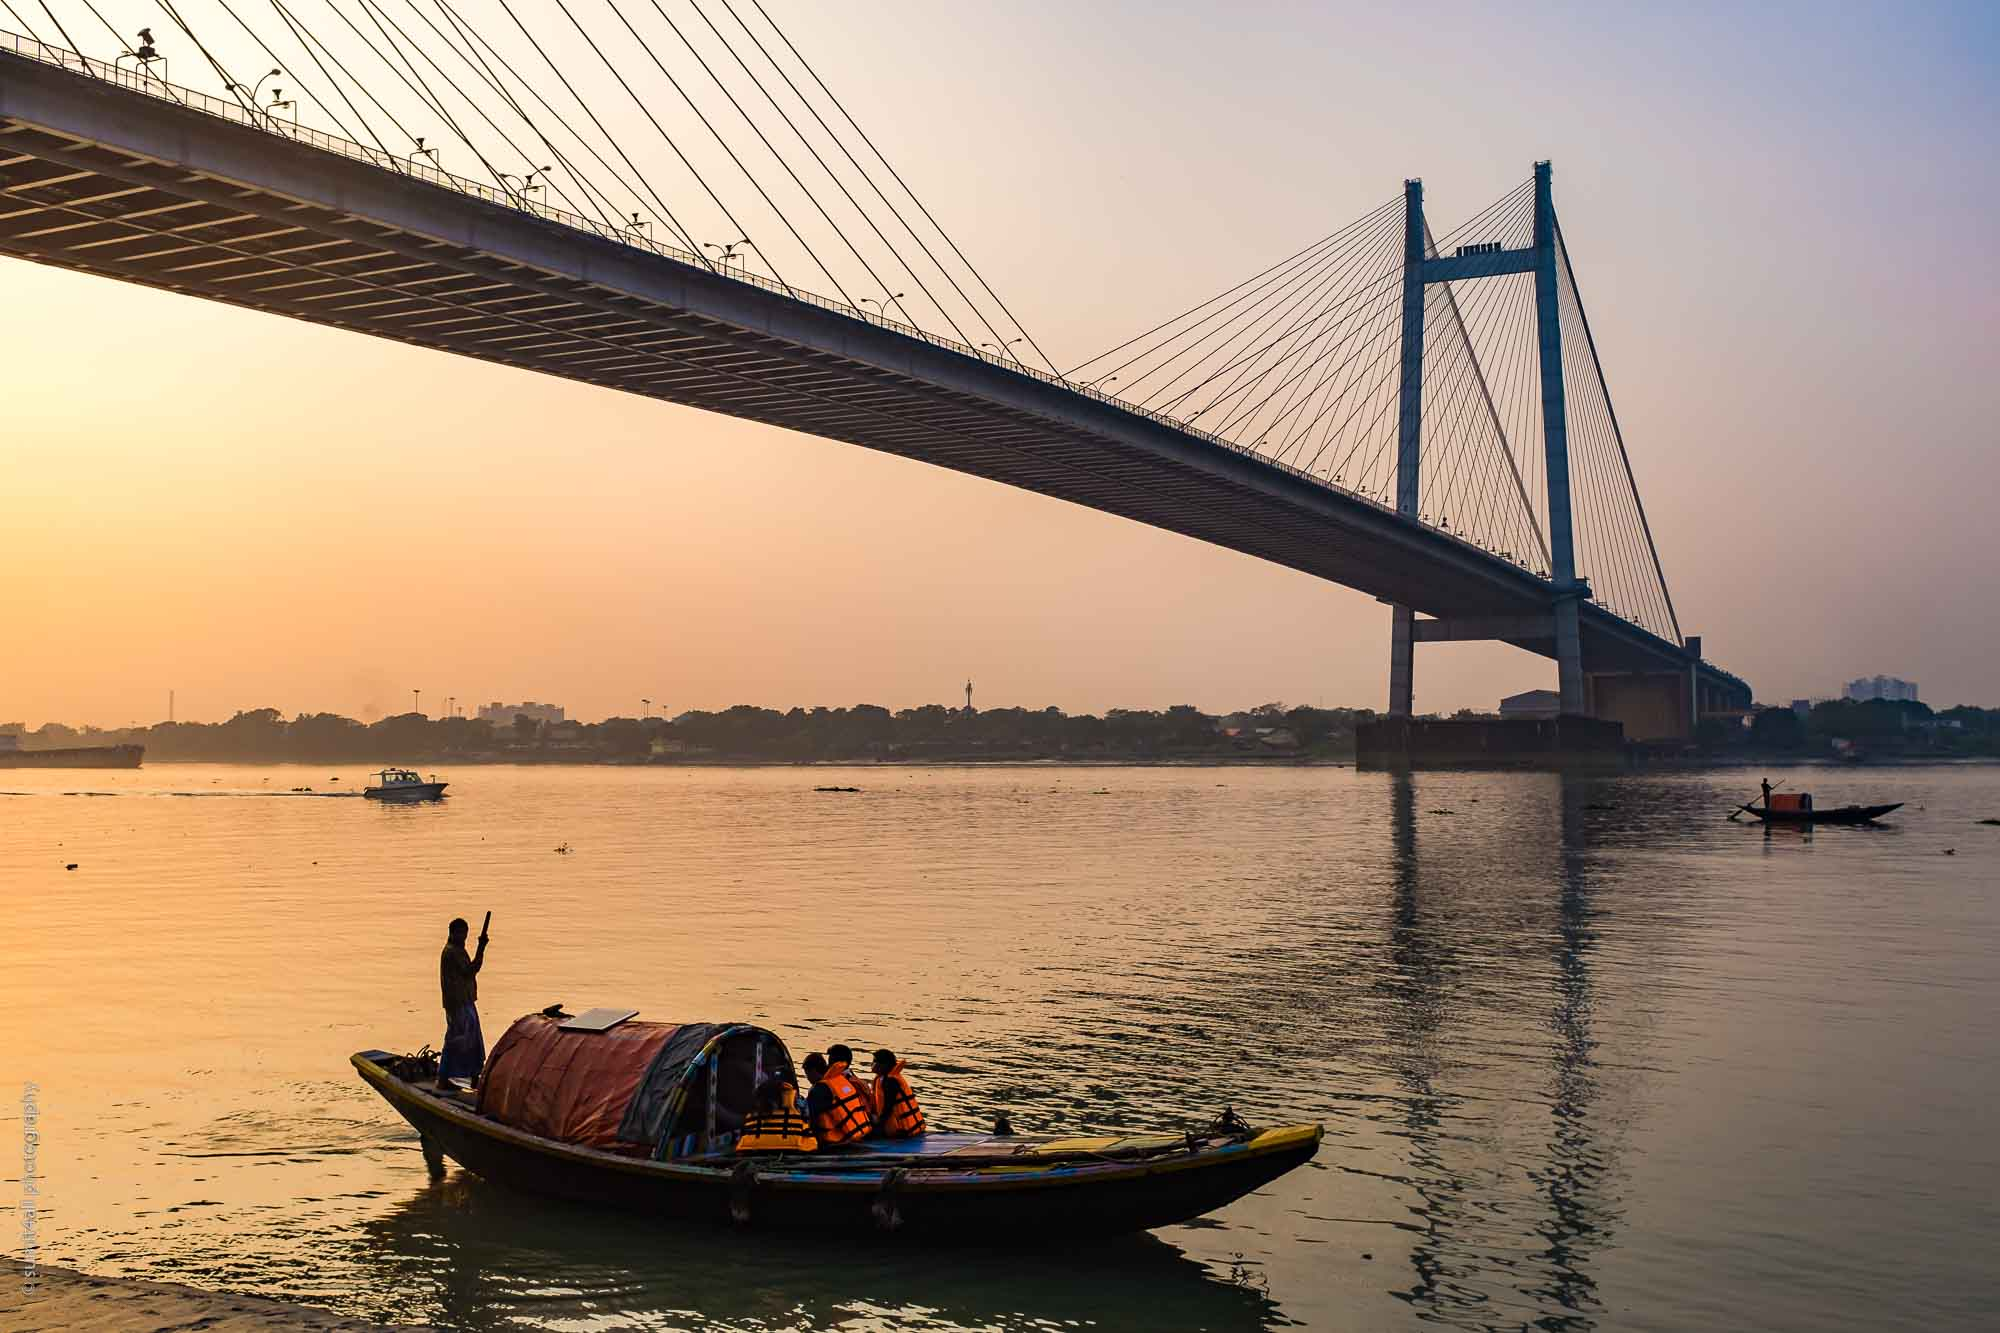 The Vidyasagar Setu Bridge over the Hooghly in Kolkata